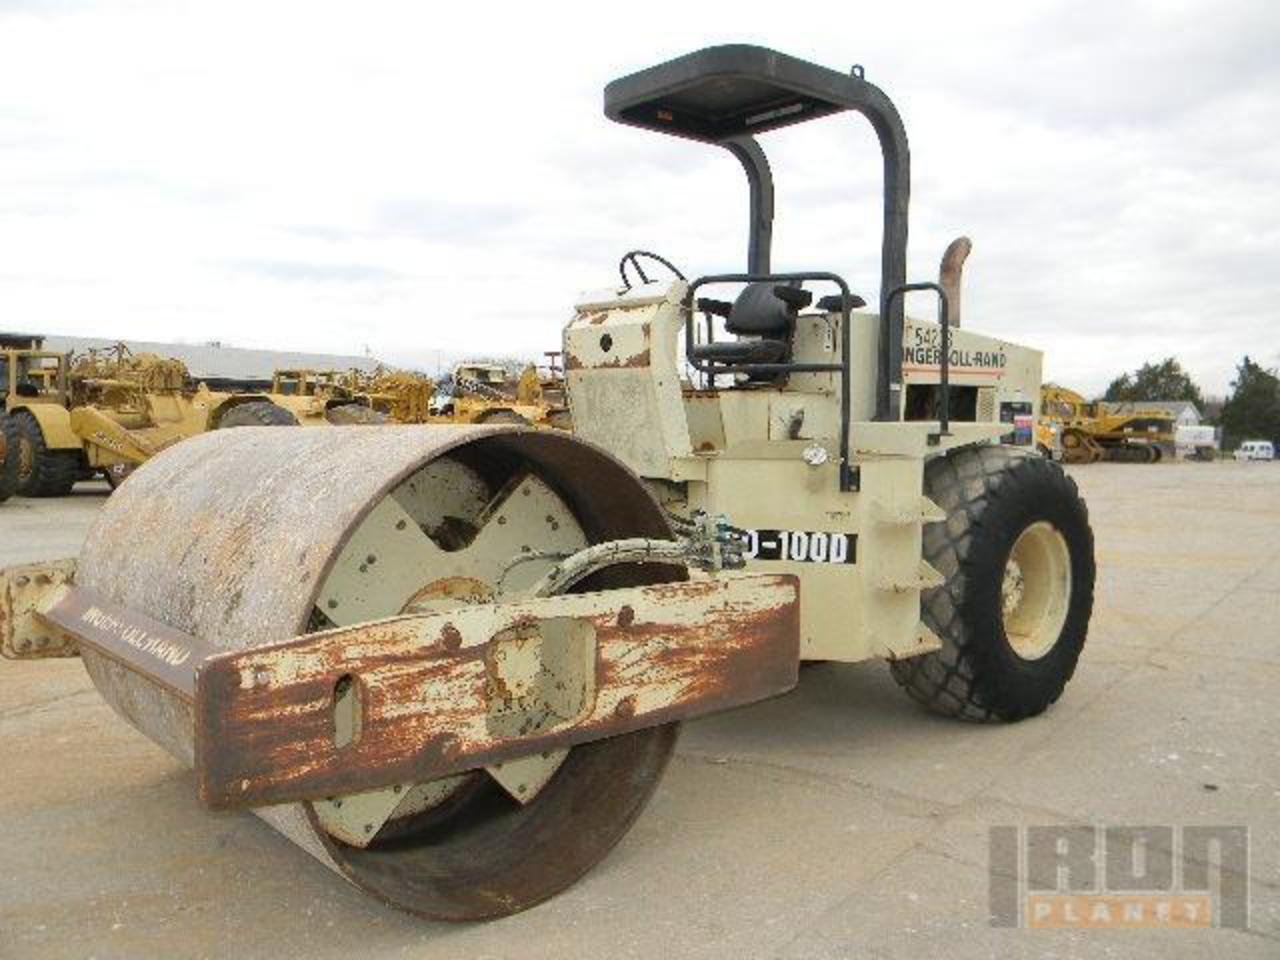 Ingersoll-rand sd-100d photo - 4